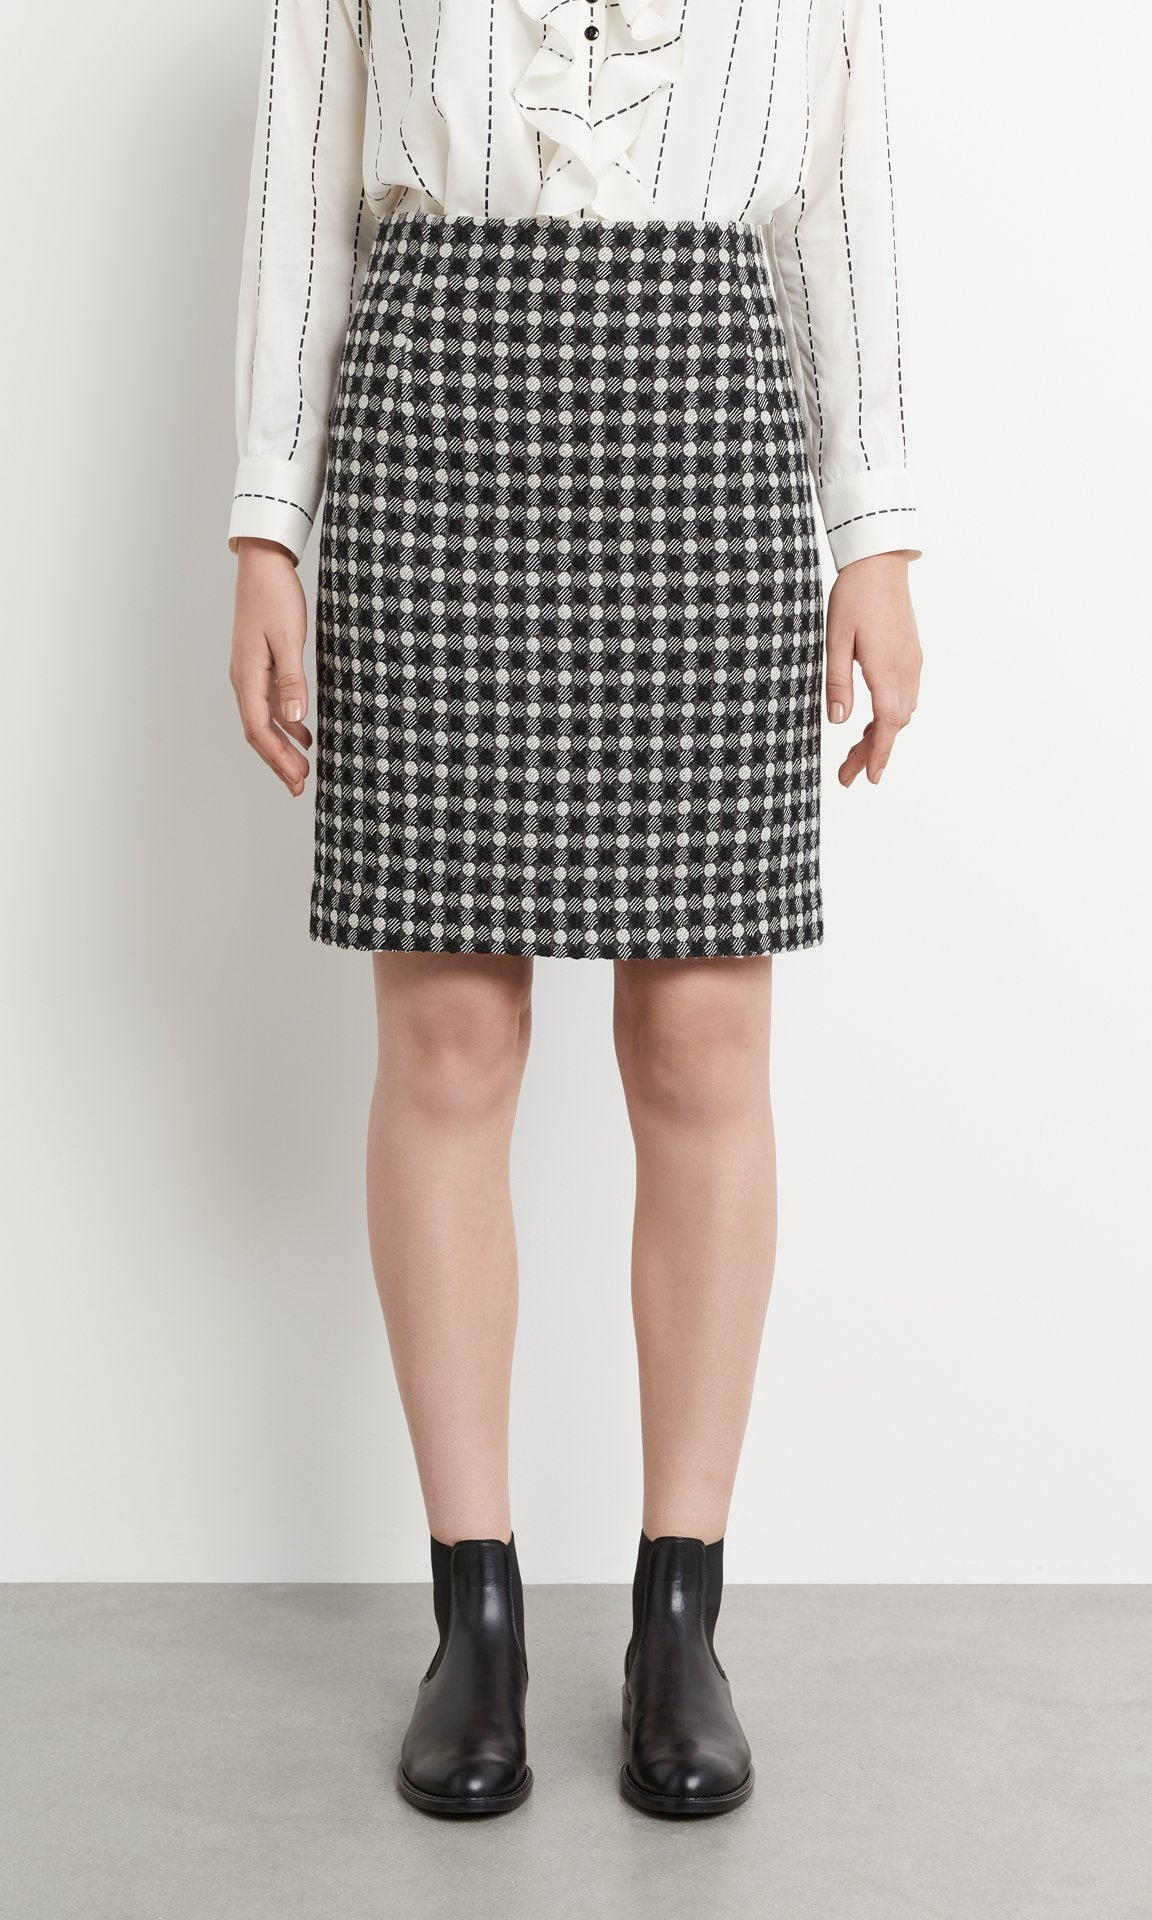 Letitia Skirt Blk/White